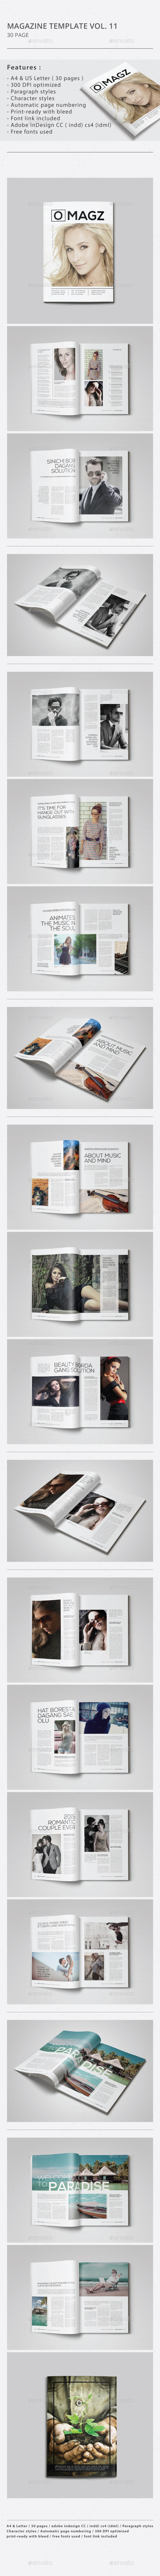 GraphicRiver Indesign Magazine Template Vol.11 10305315